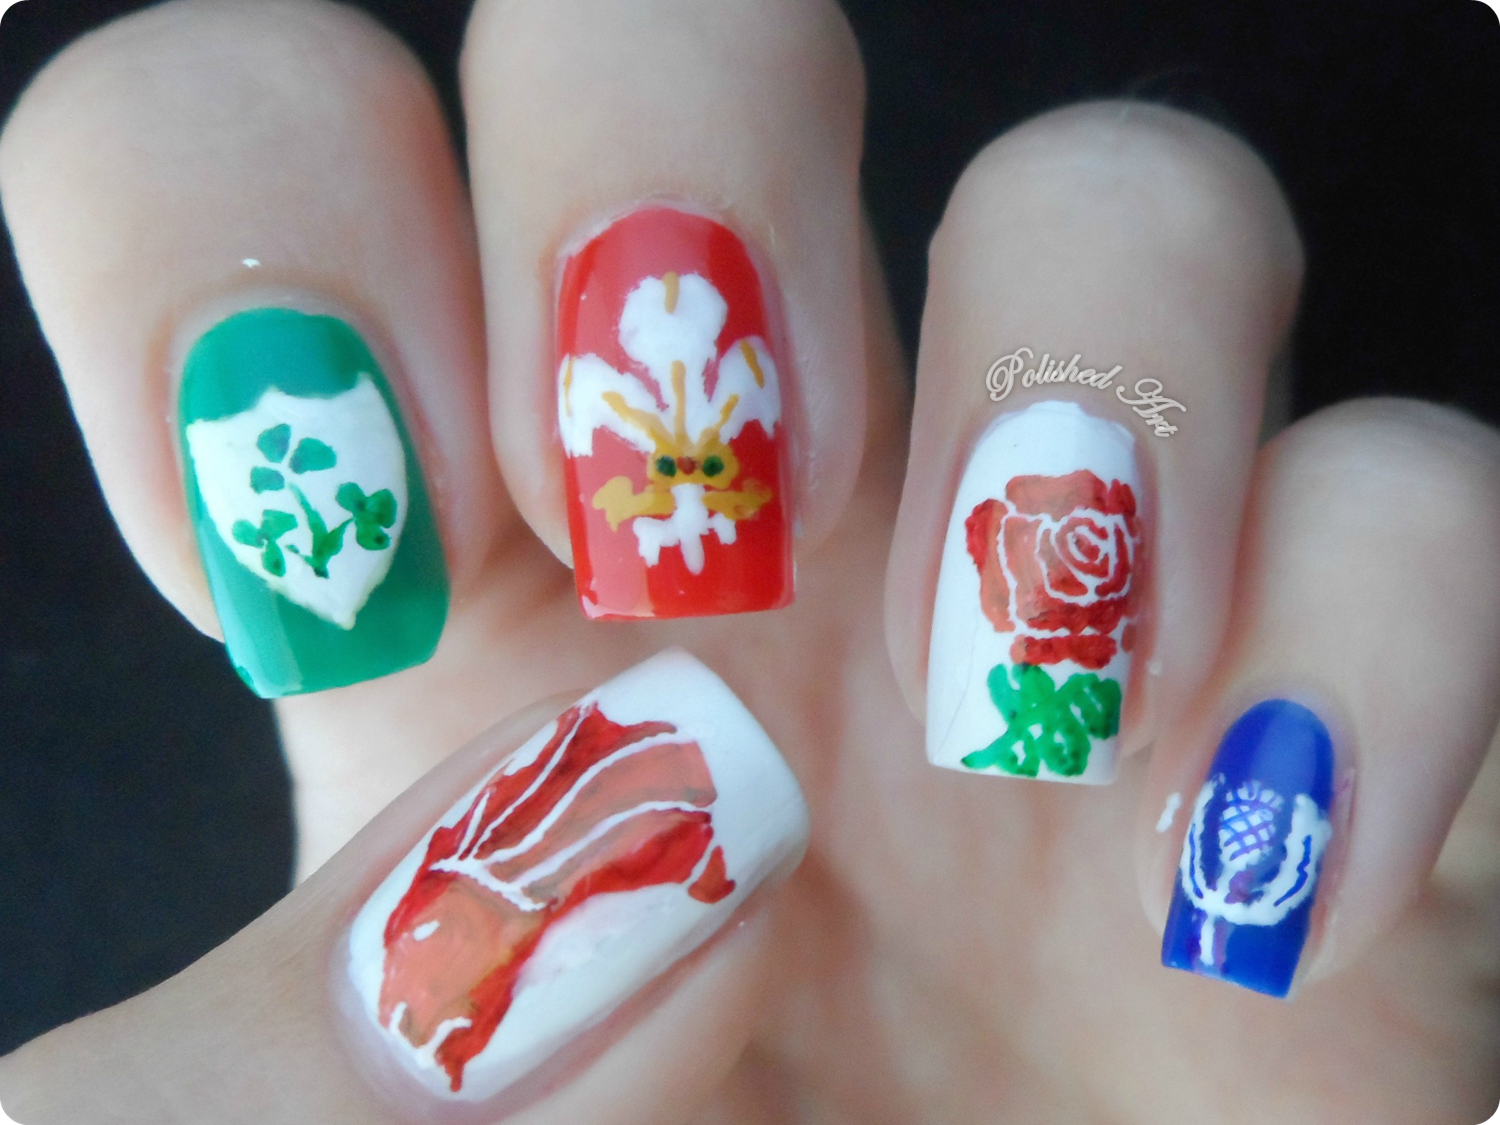 acrylic nails rugby photo - 1